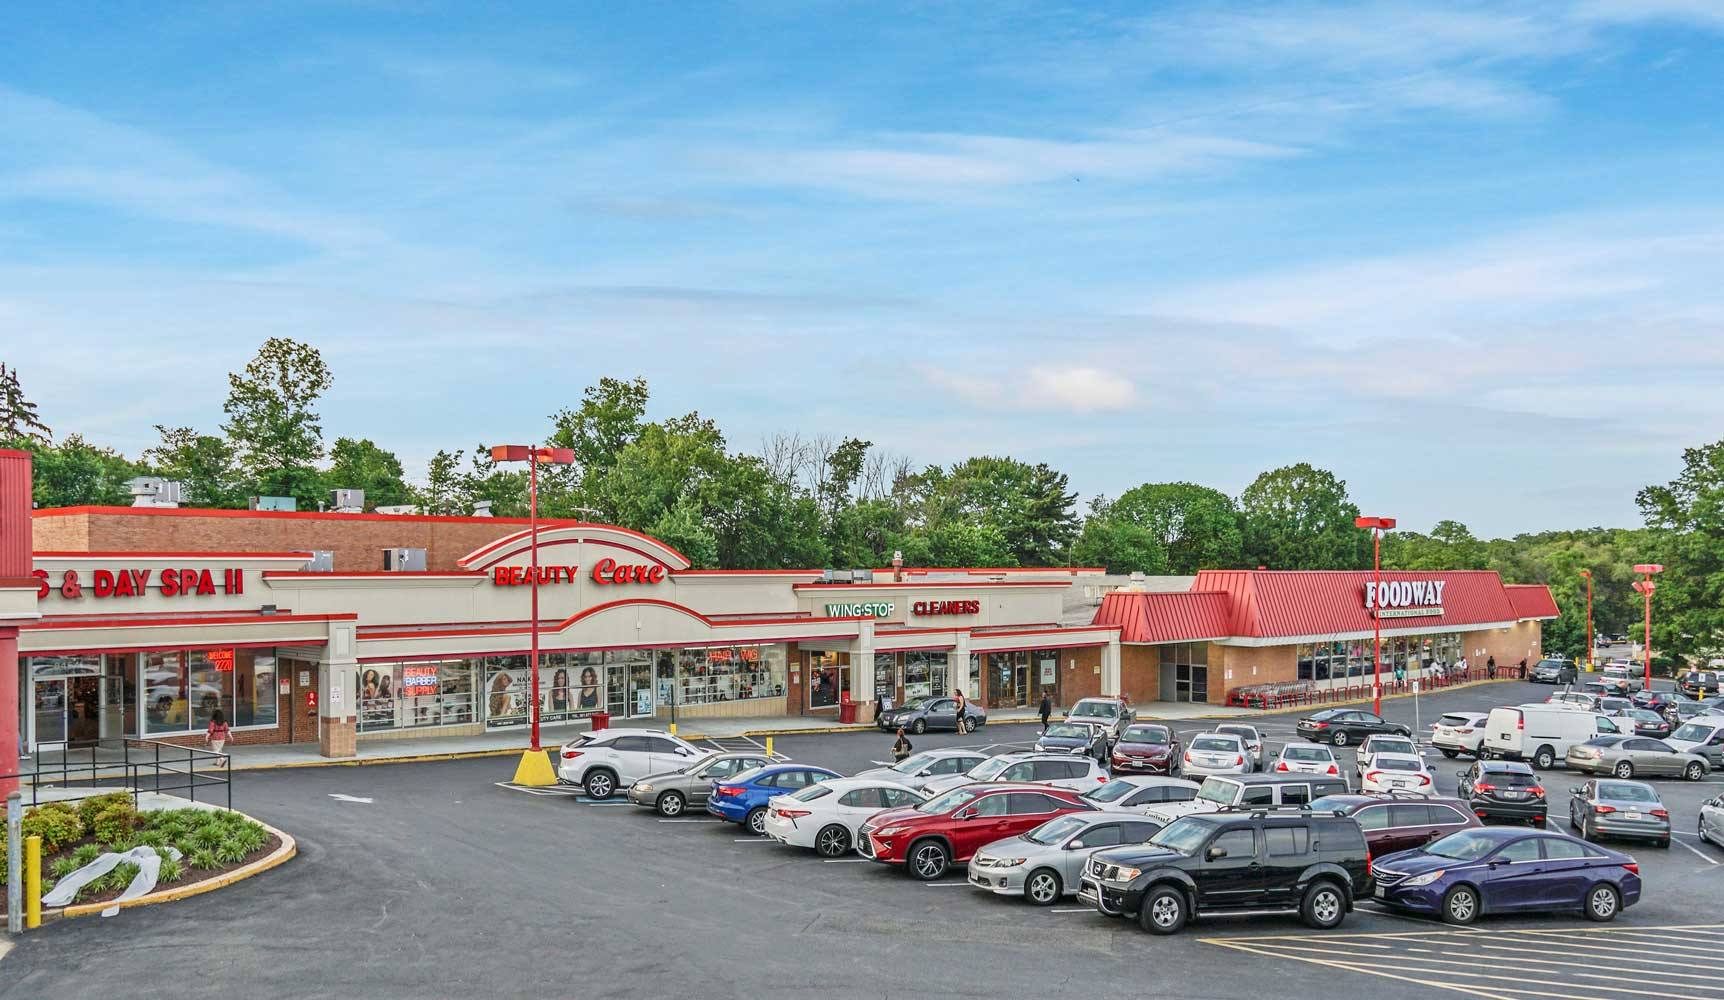 Carrollton Shopping Center is walking distance from Carrollon Manor Apartments